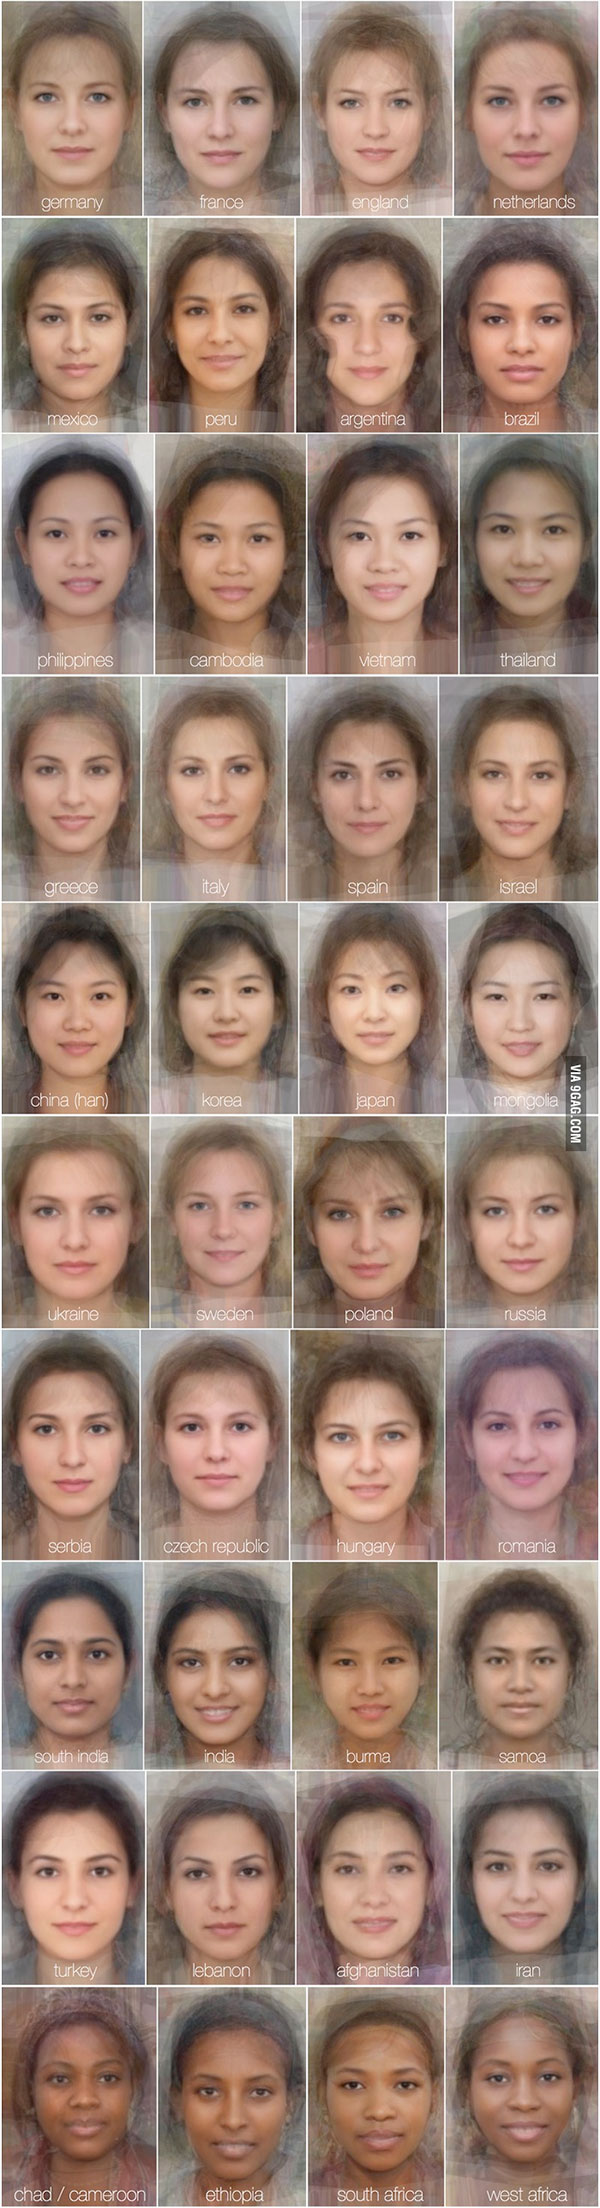 average women's faces from around the world